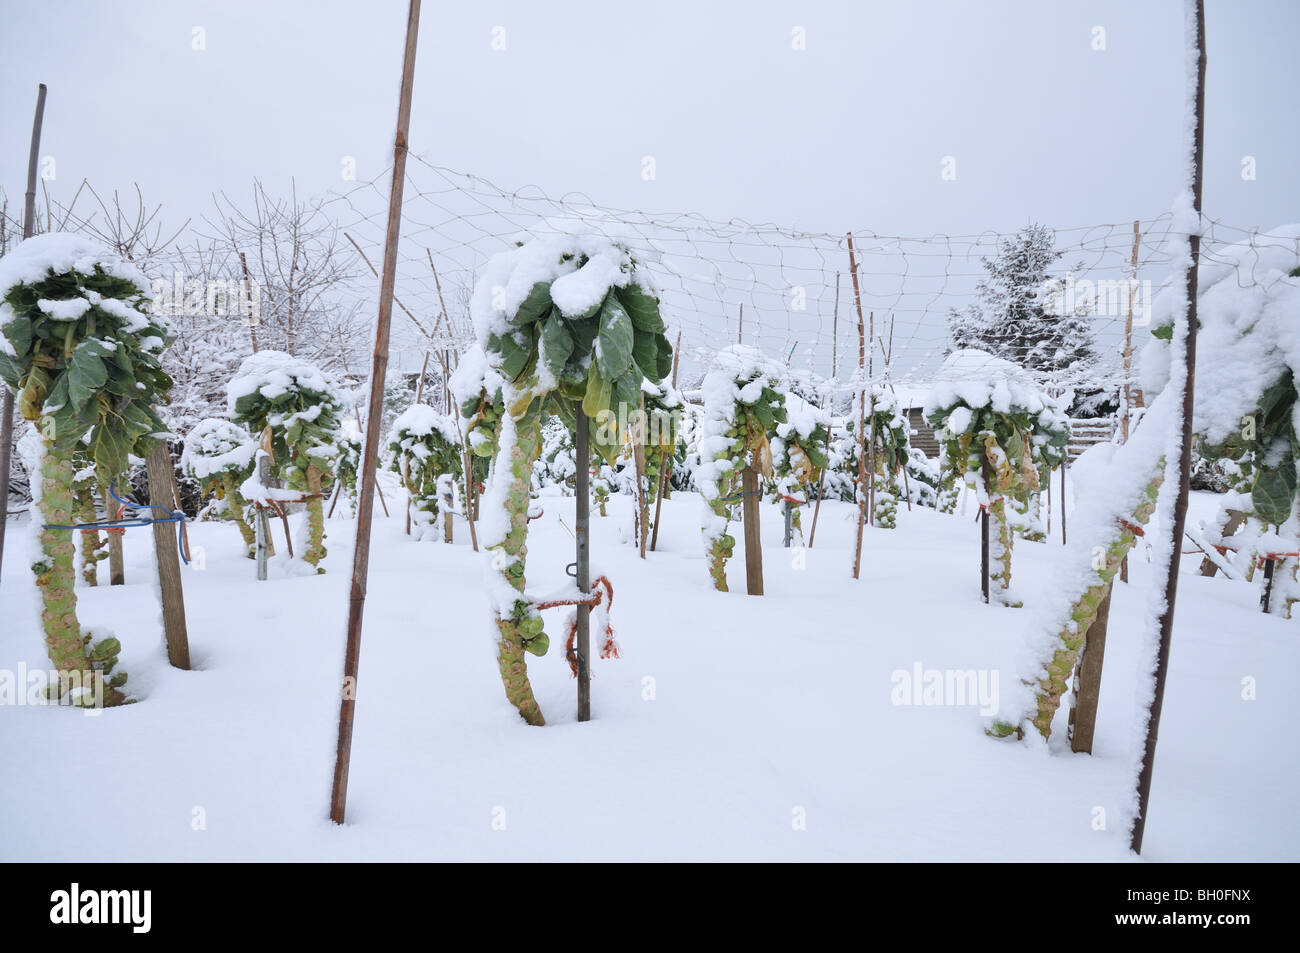 Vegetable (Brussels sprouts) plot covered in snow (damage caused by winter weather) - Stock Image